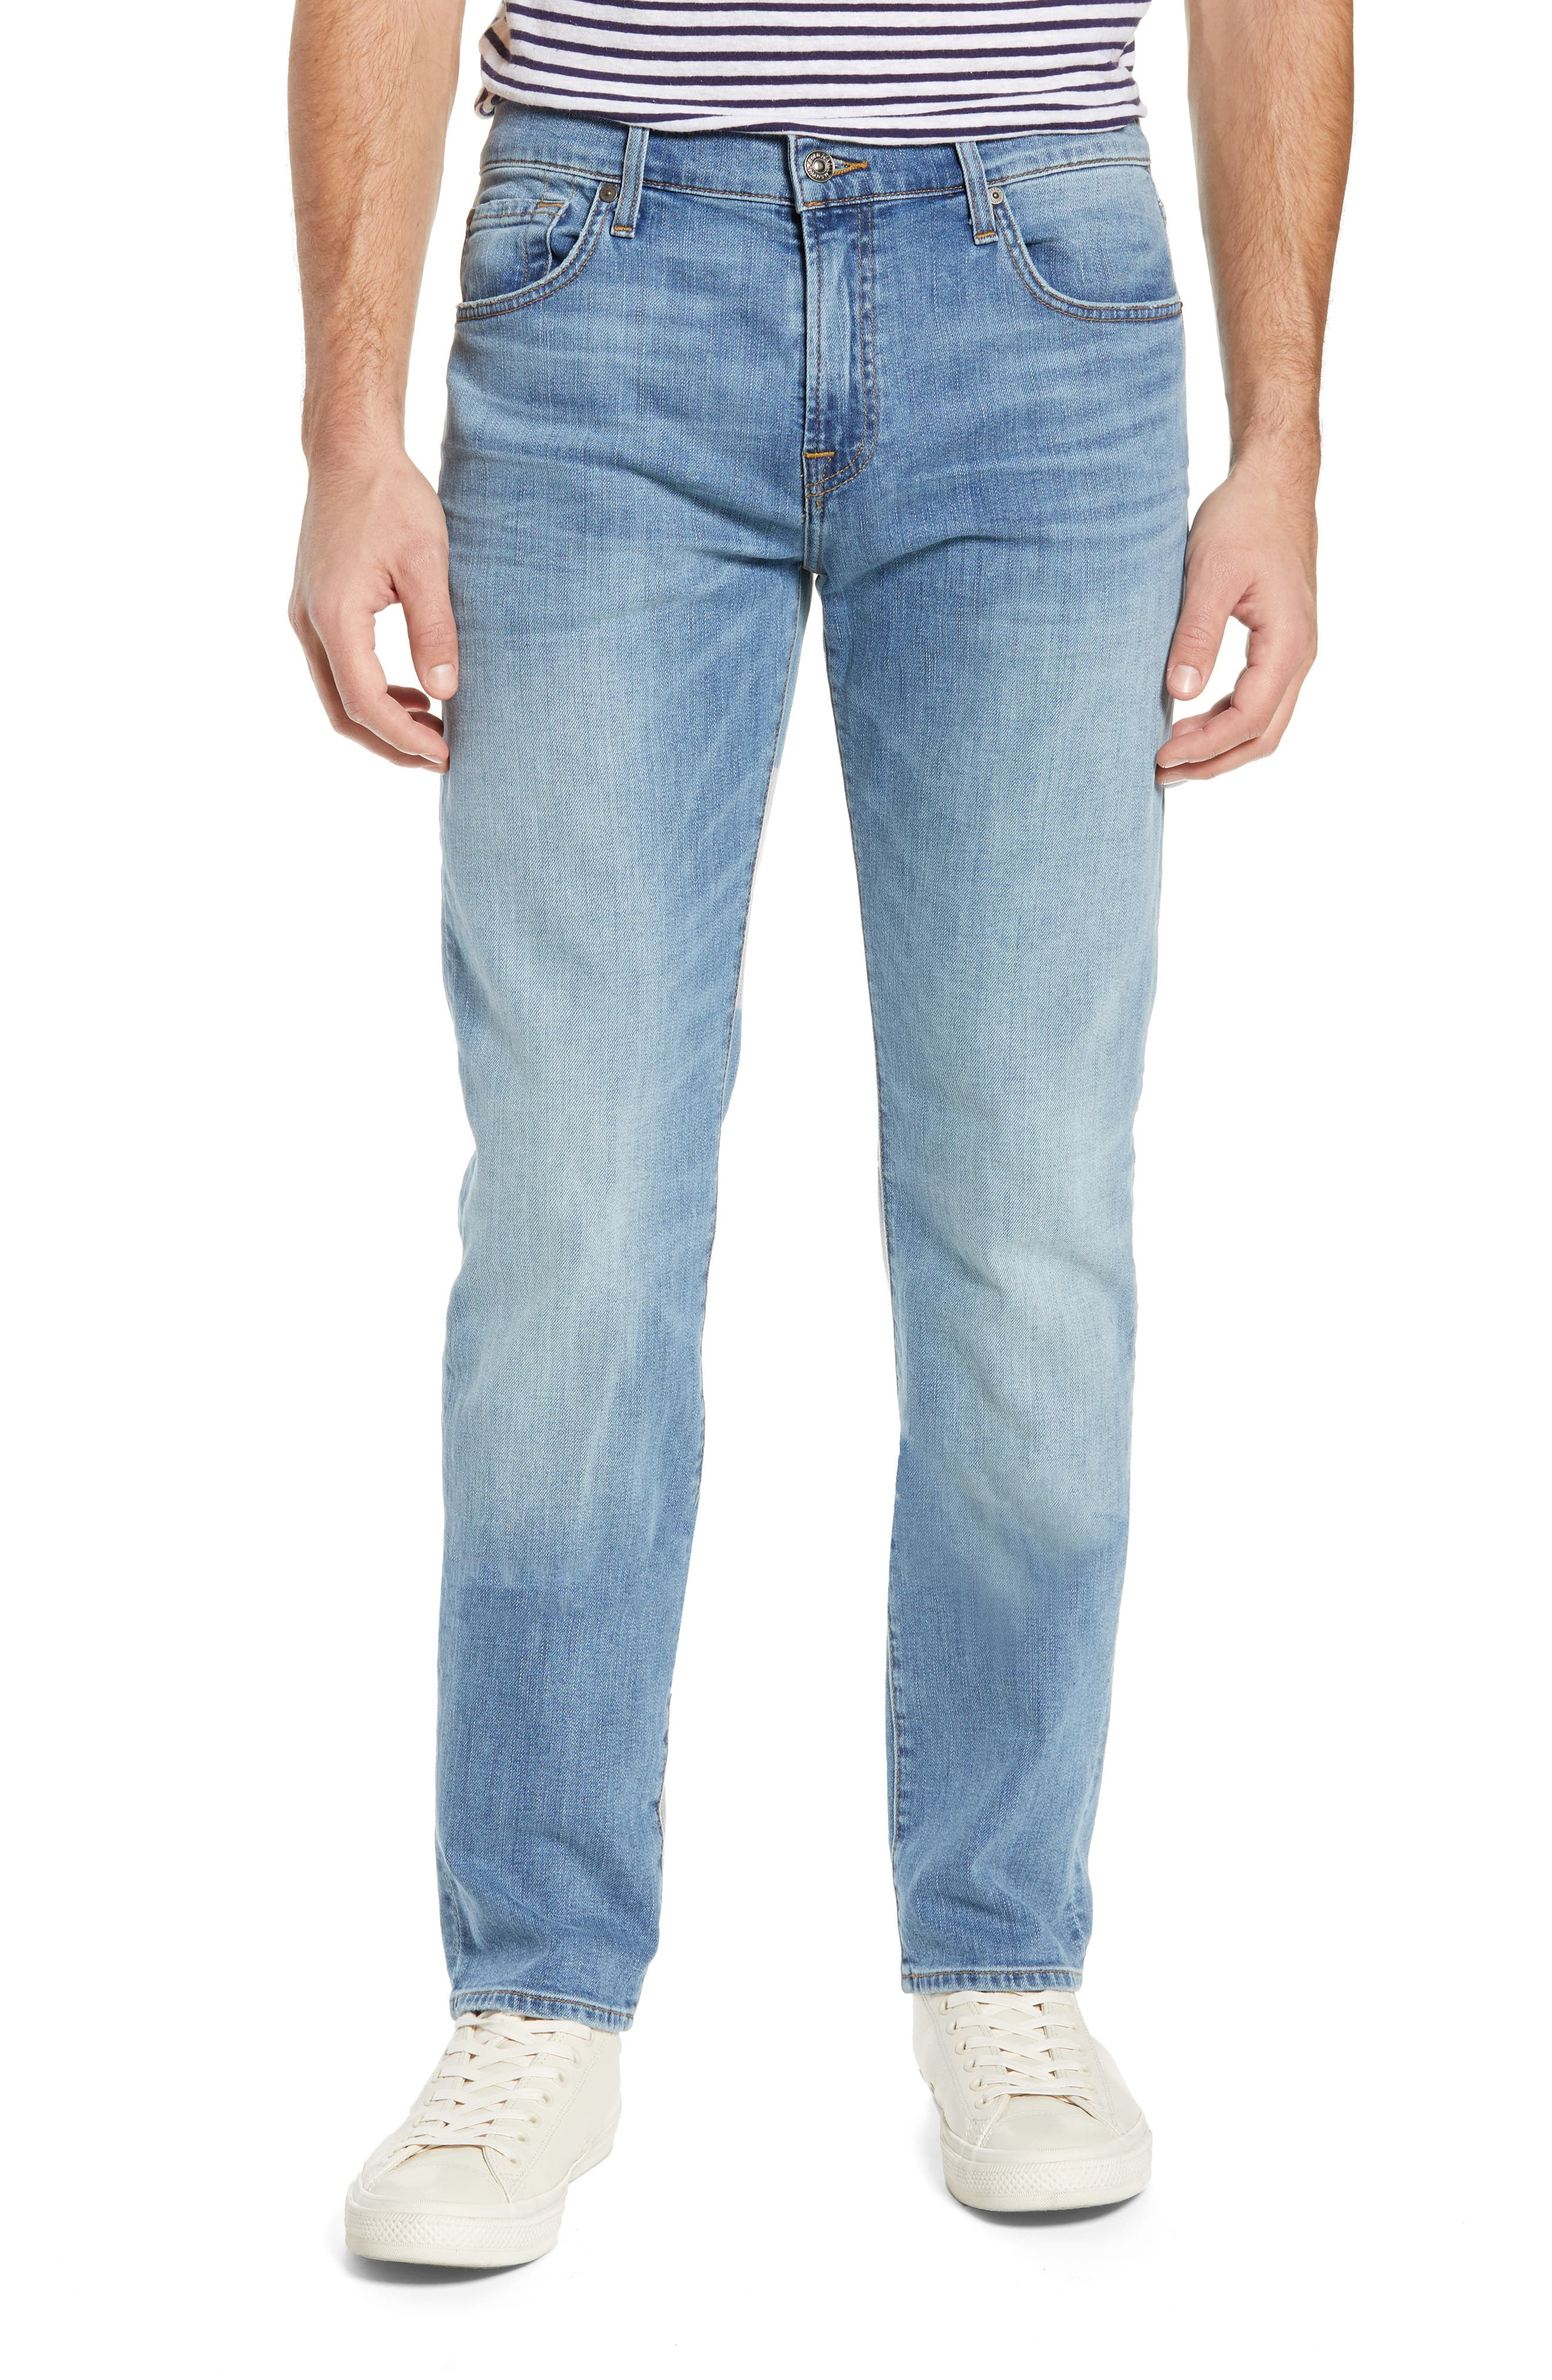 7 FOR ALL MANKIND<SUP>®</SUP>, Adrien Luxe Performance Slim Fit Jeans, Main thumbnail 1, color, ZEITGEIST